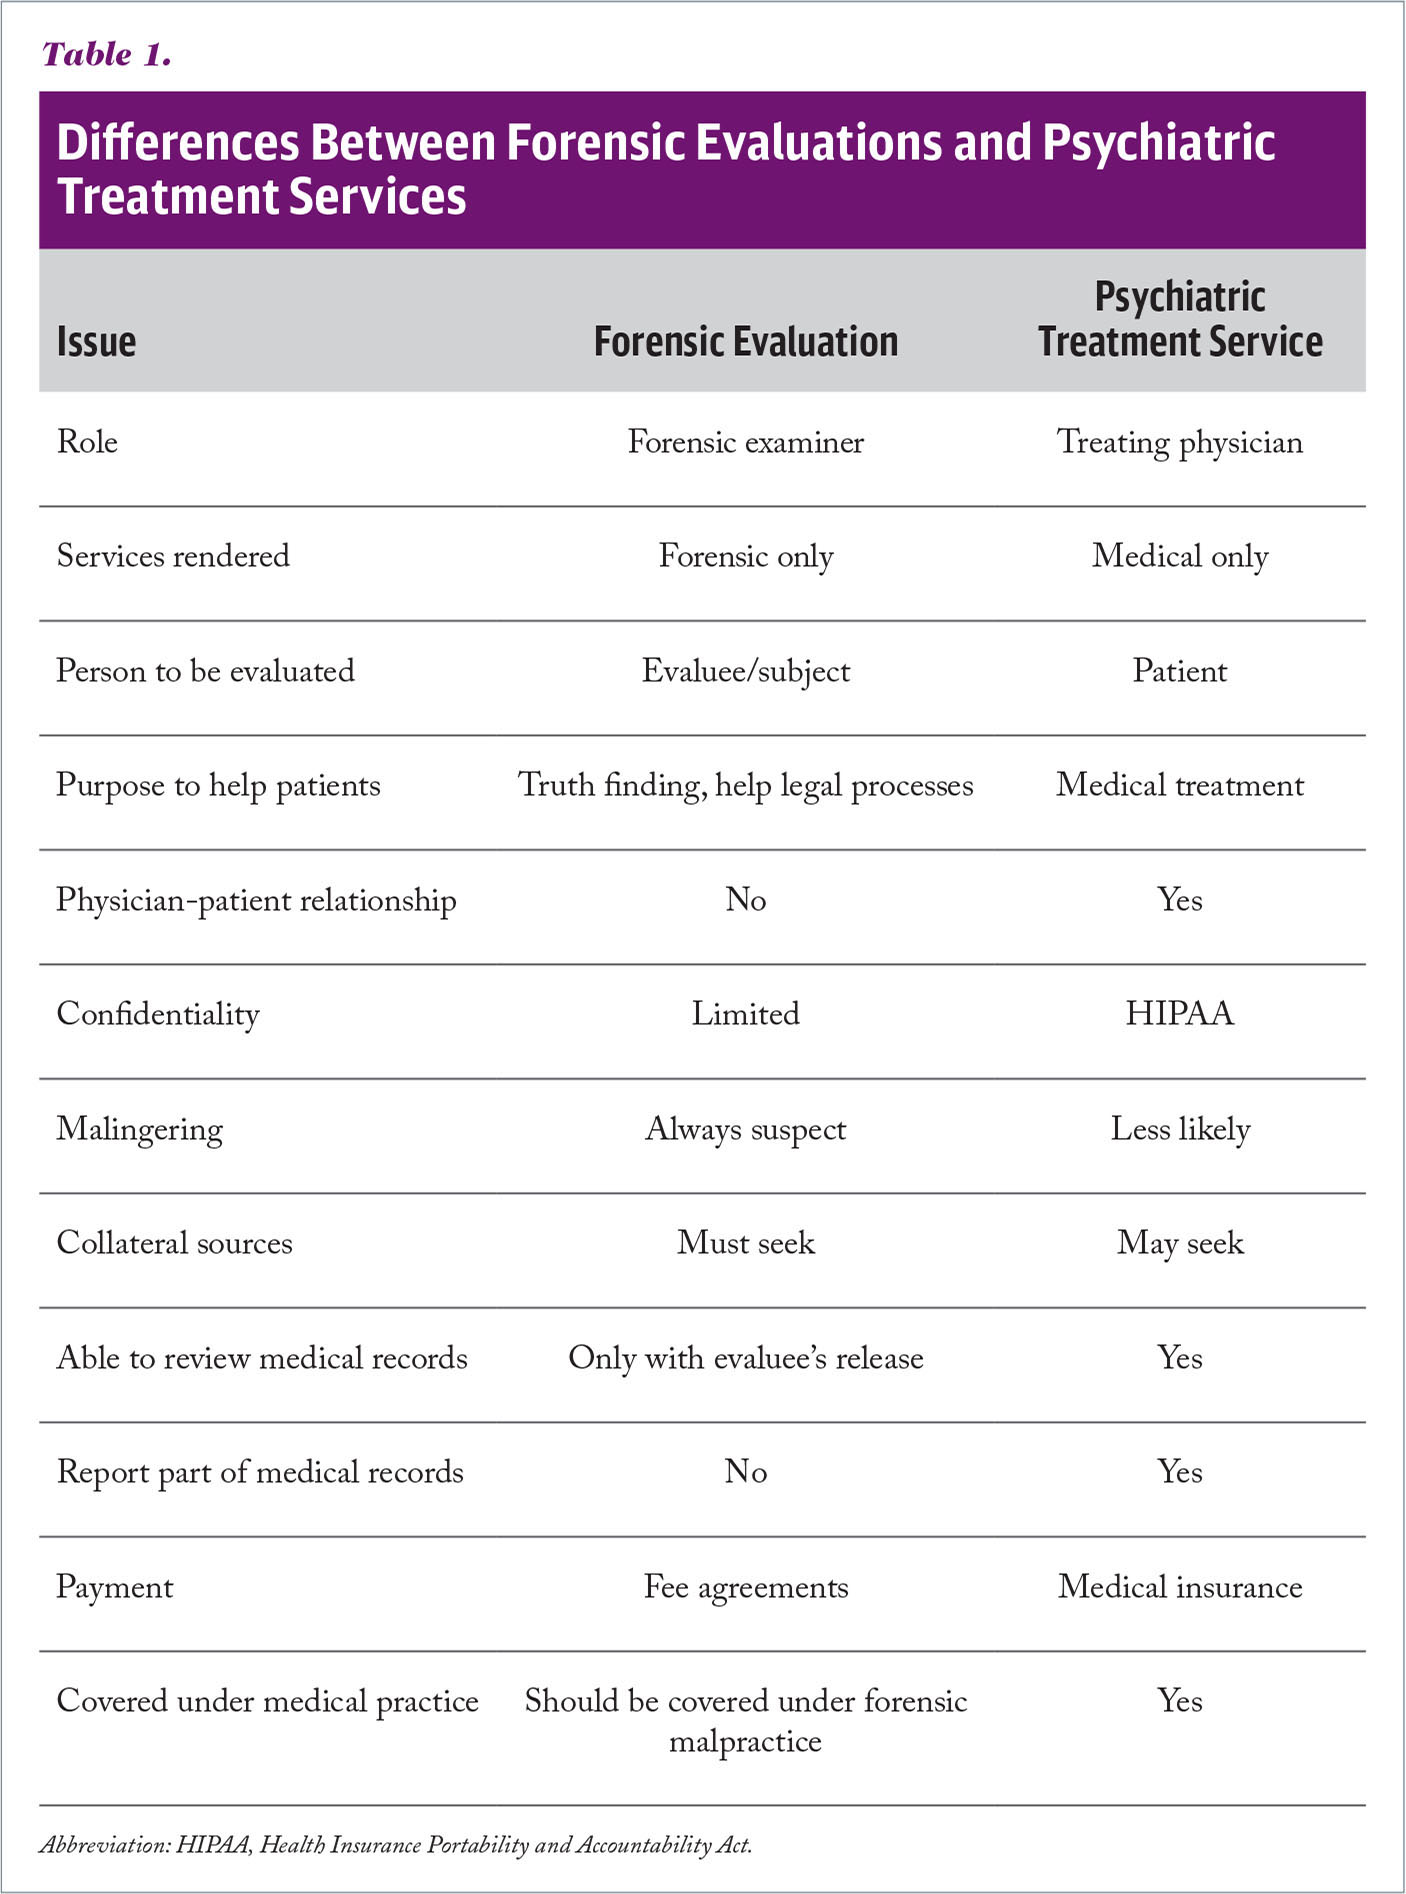 Differences Between Forensic Evaluations and Psychiatric Treatment Services